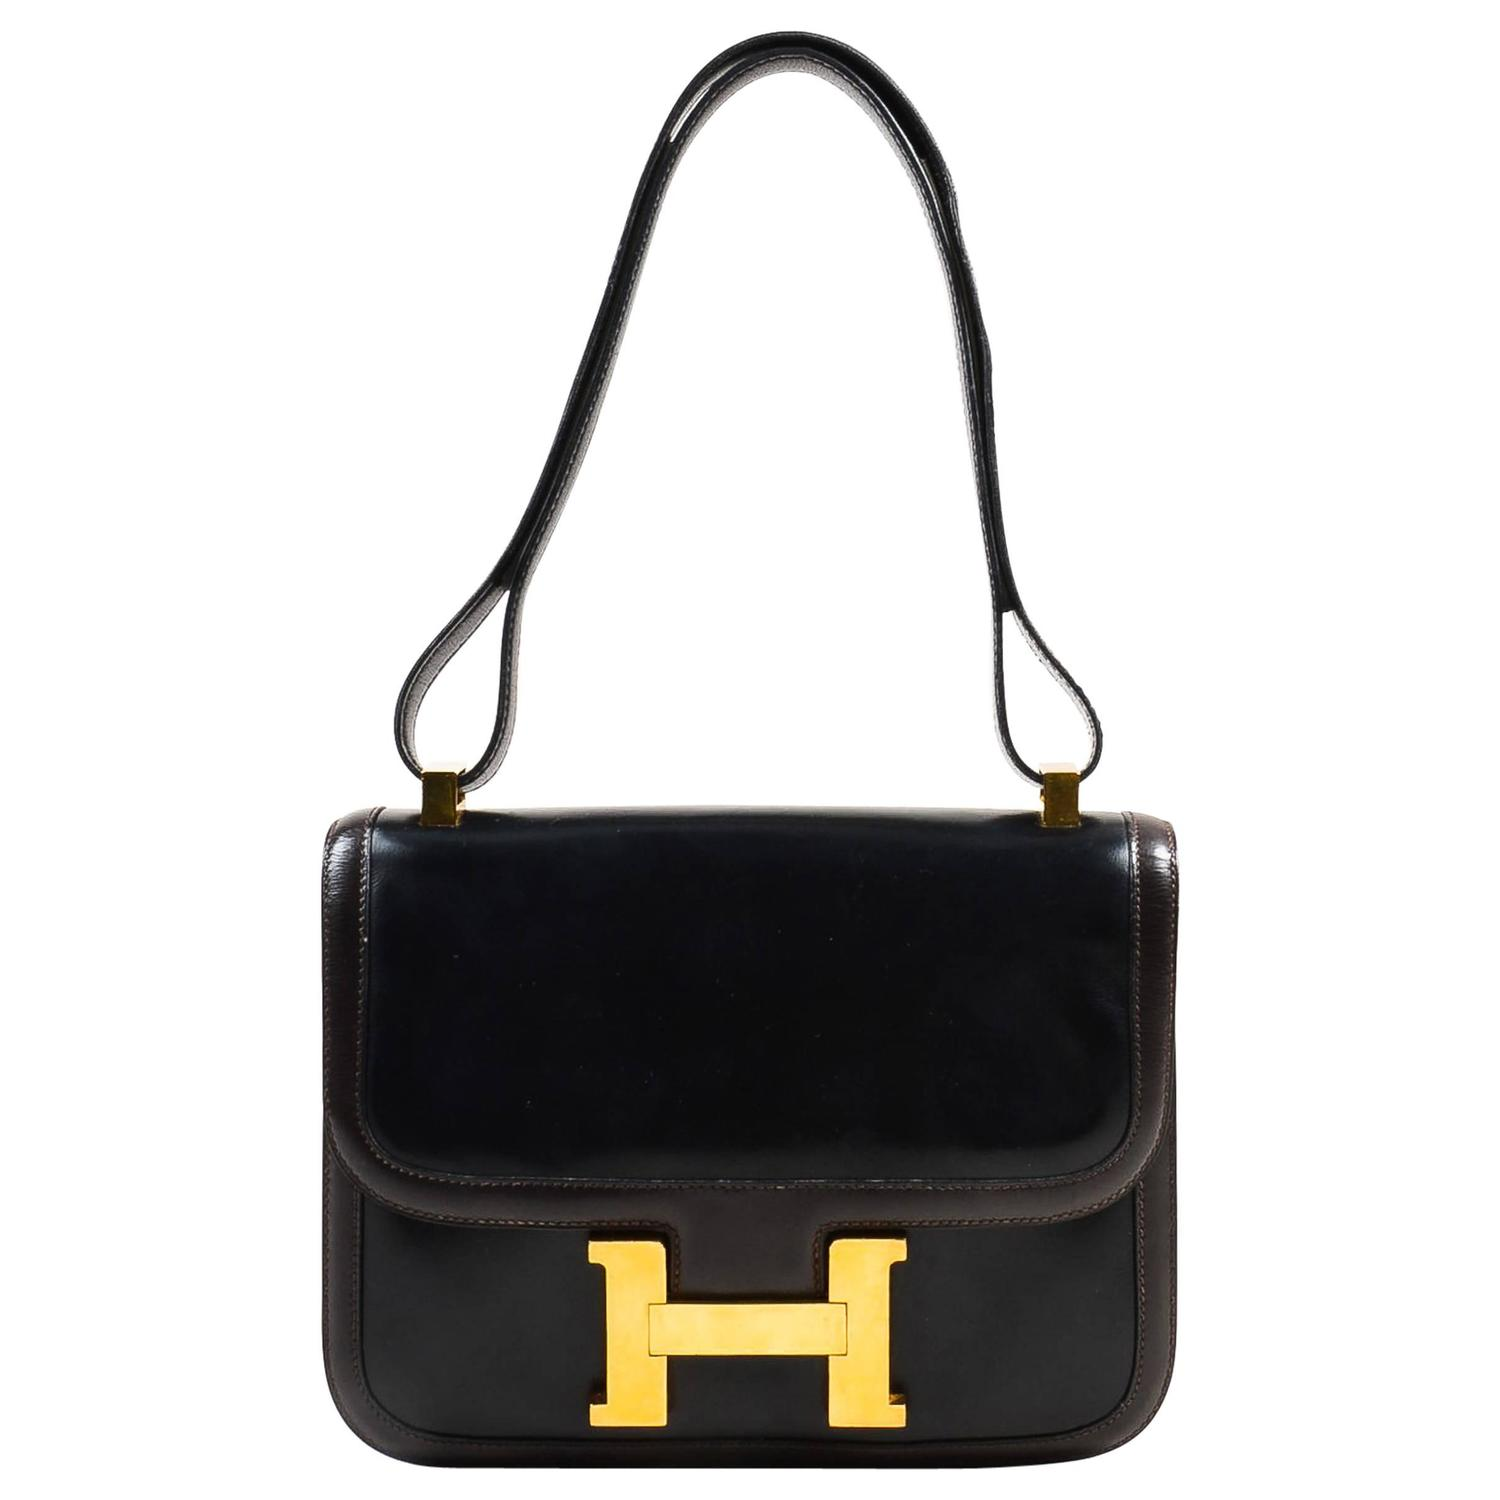 handbags hermes outlet - Vintage Herm��s Shoulder Bags - 235 For Sale at 1stdibs - Page 2